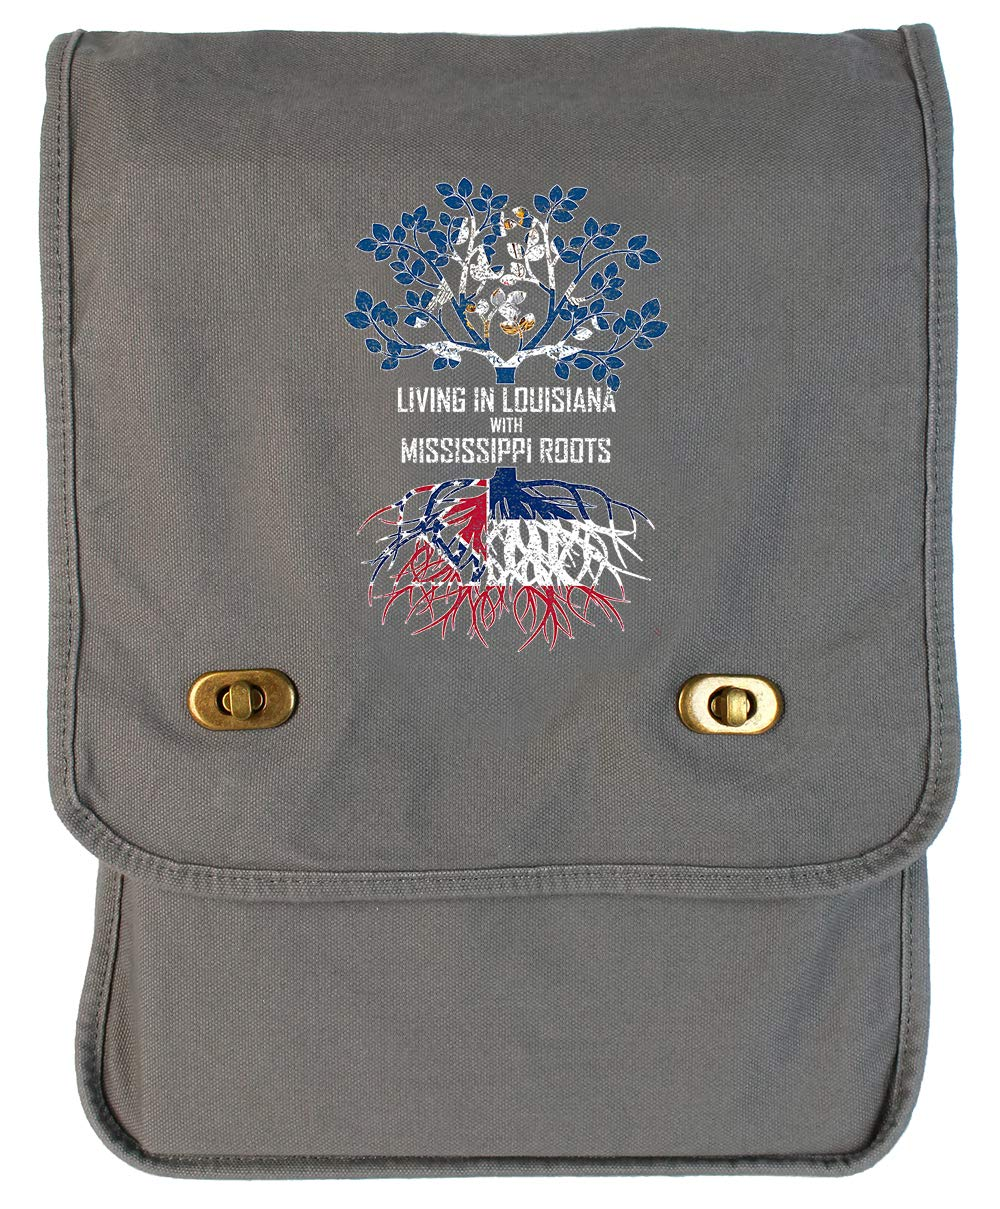 Tenacitee Living In Louisiana with Mississippi Roots Grey Brushed Canvas Messenger Bag